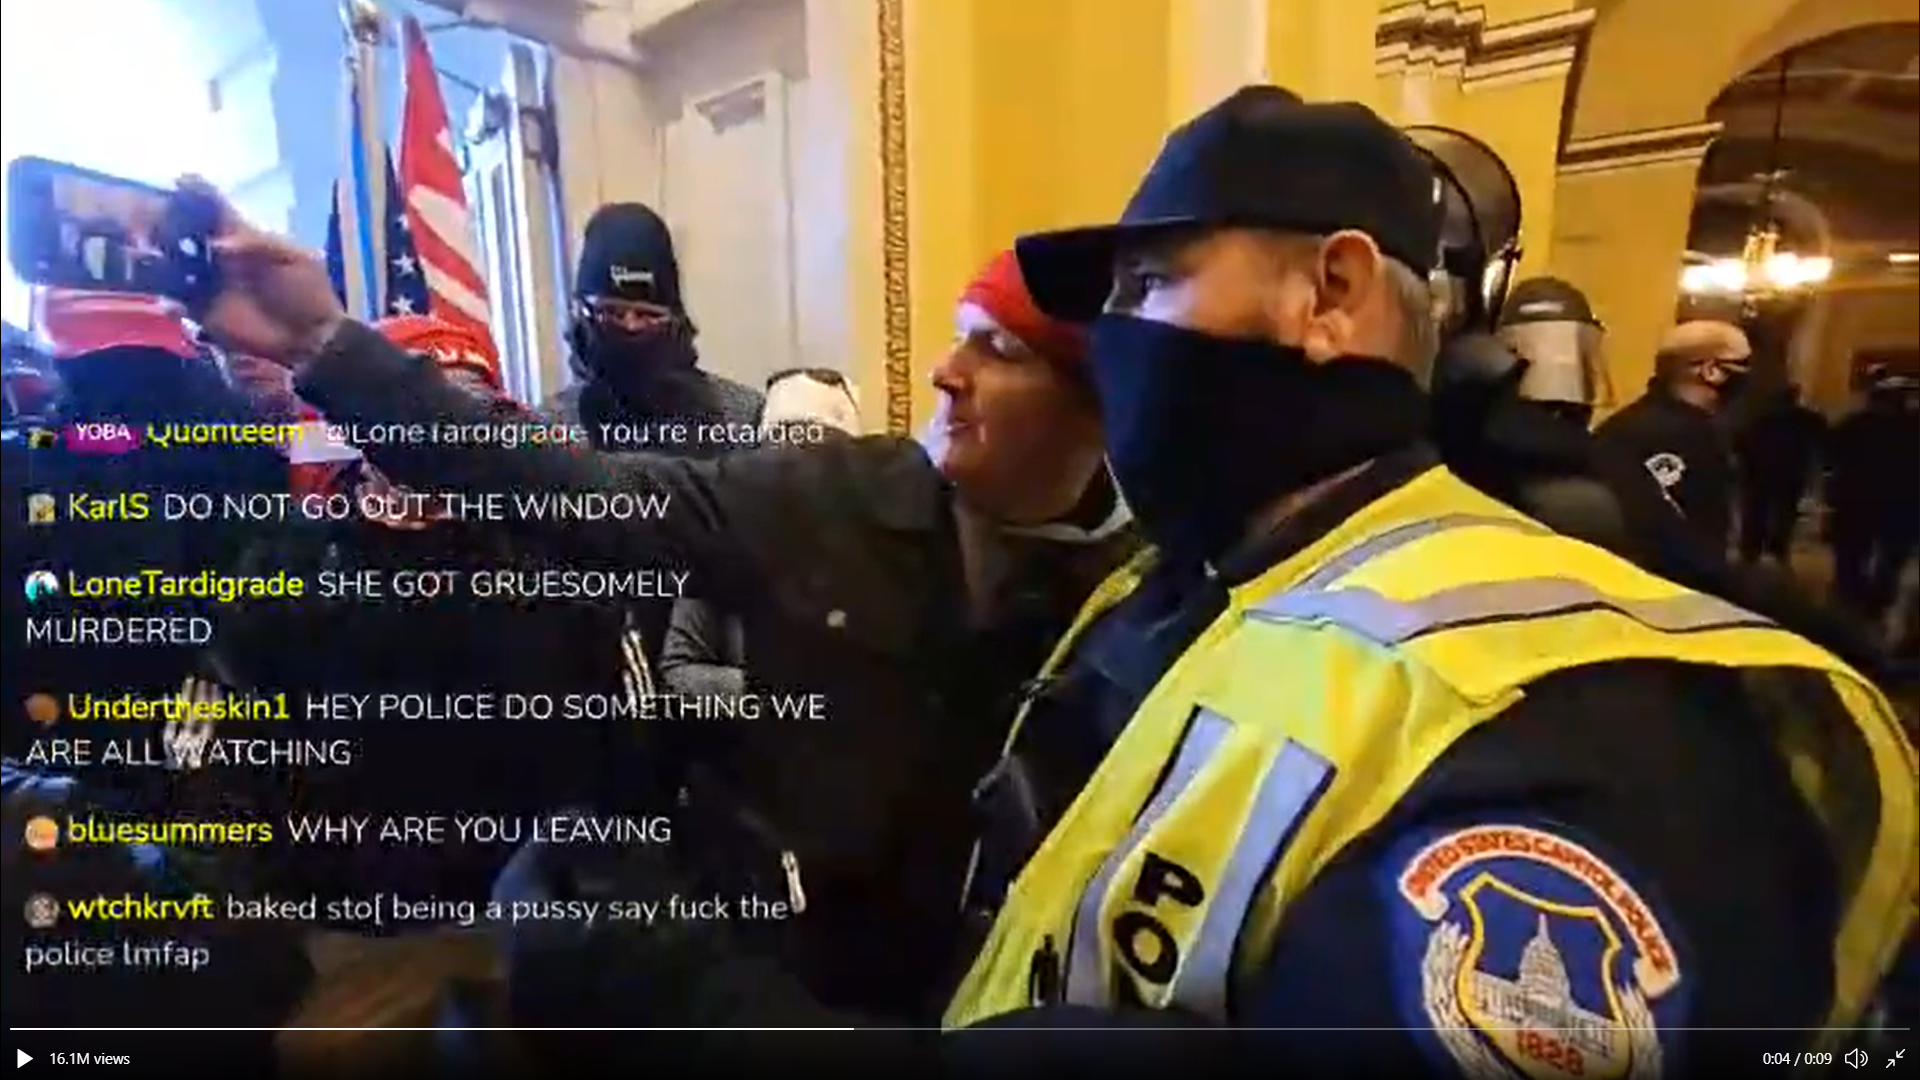 A livestream screenshot of a cop taking a selfie with someone illegally inside the Capitol building.